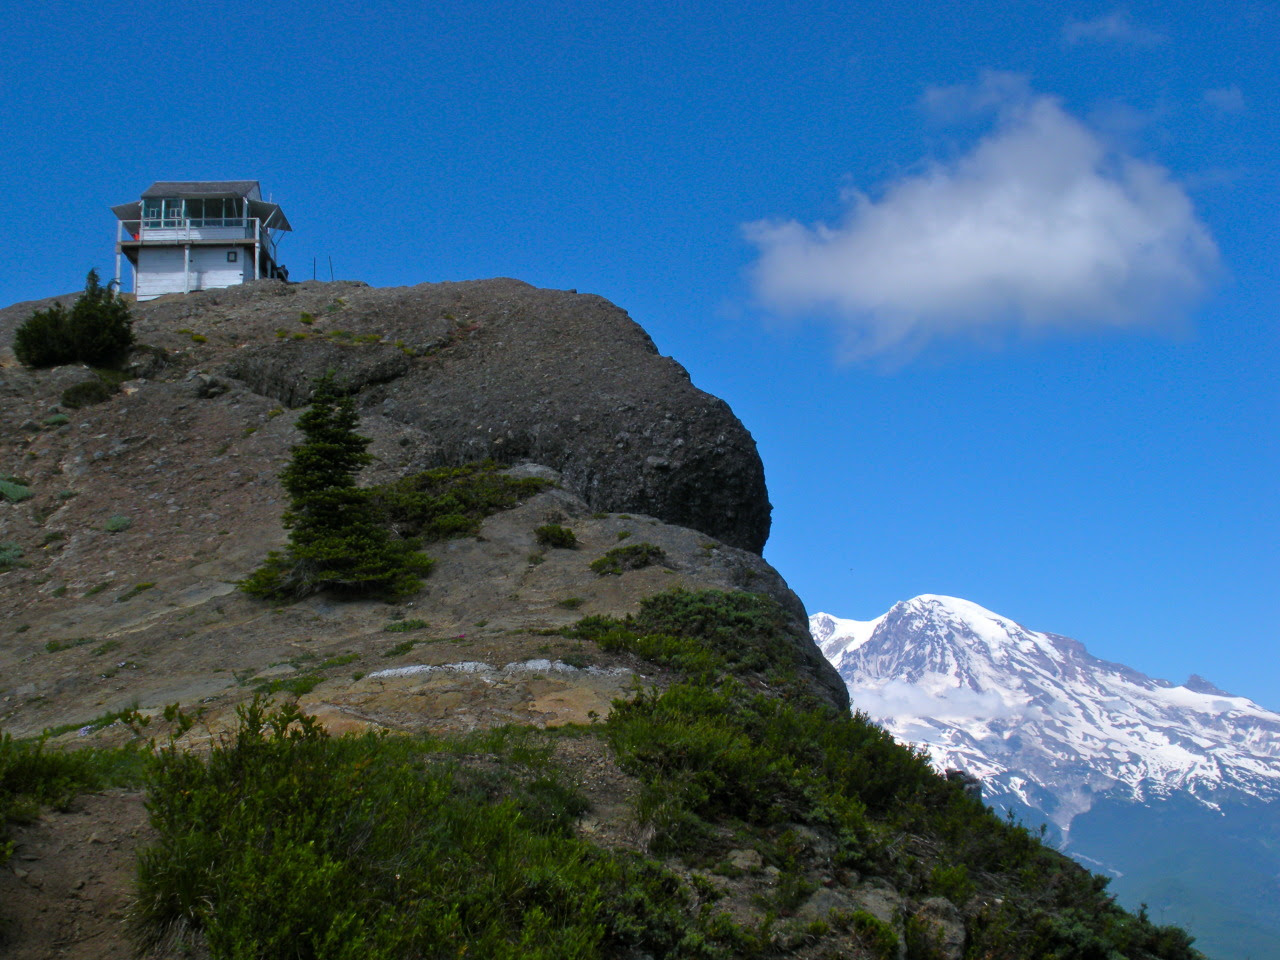 "High Rock Look Out near Ashford, Washington A plaque reads: """"In loving memory of Johnnie T. Peters who packed materials by mule from Mineral in 1930 to build namely this lookout, High Rock, and 10 others in the Mineral, Packwood, and Randle..."